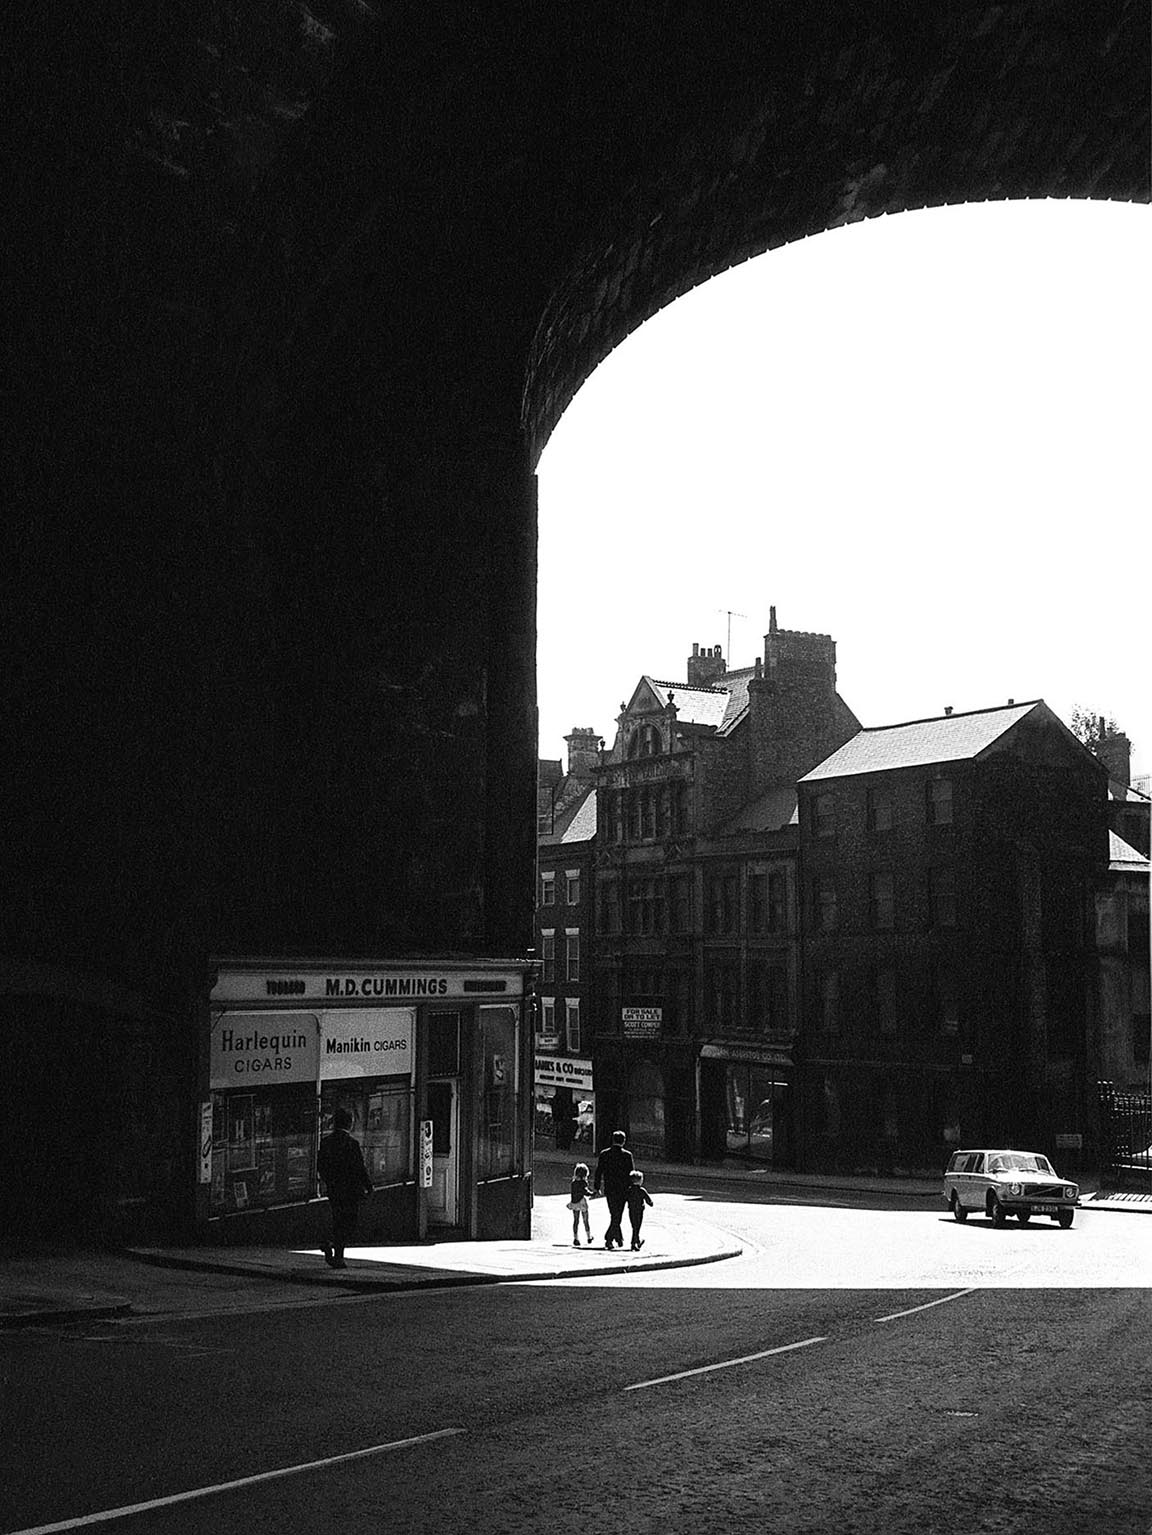 Newcastle upon Tyne 1971 © Iris Editha Schacht